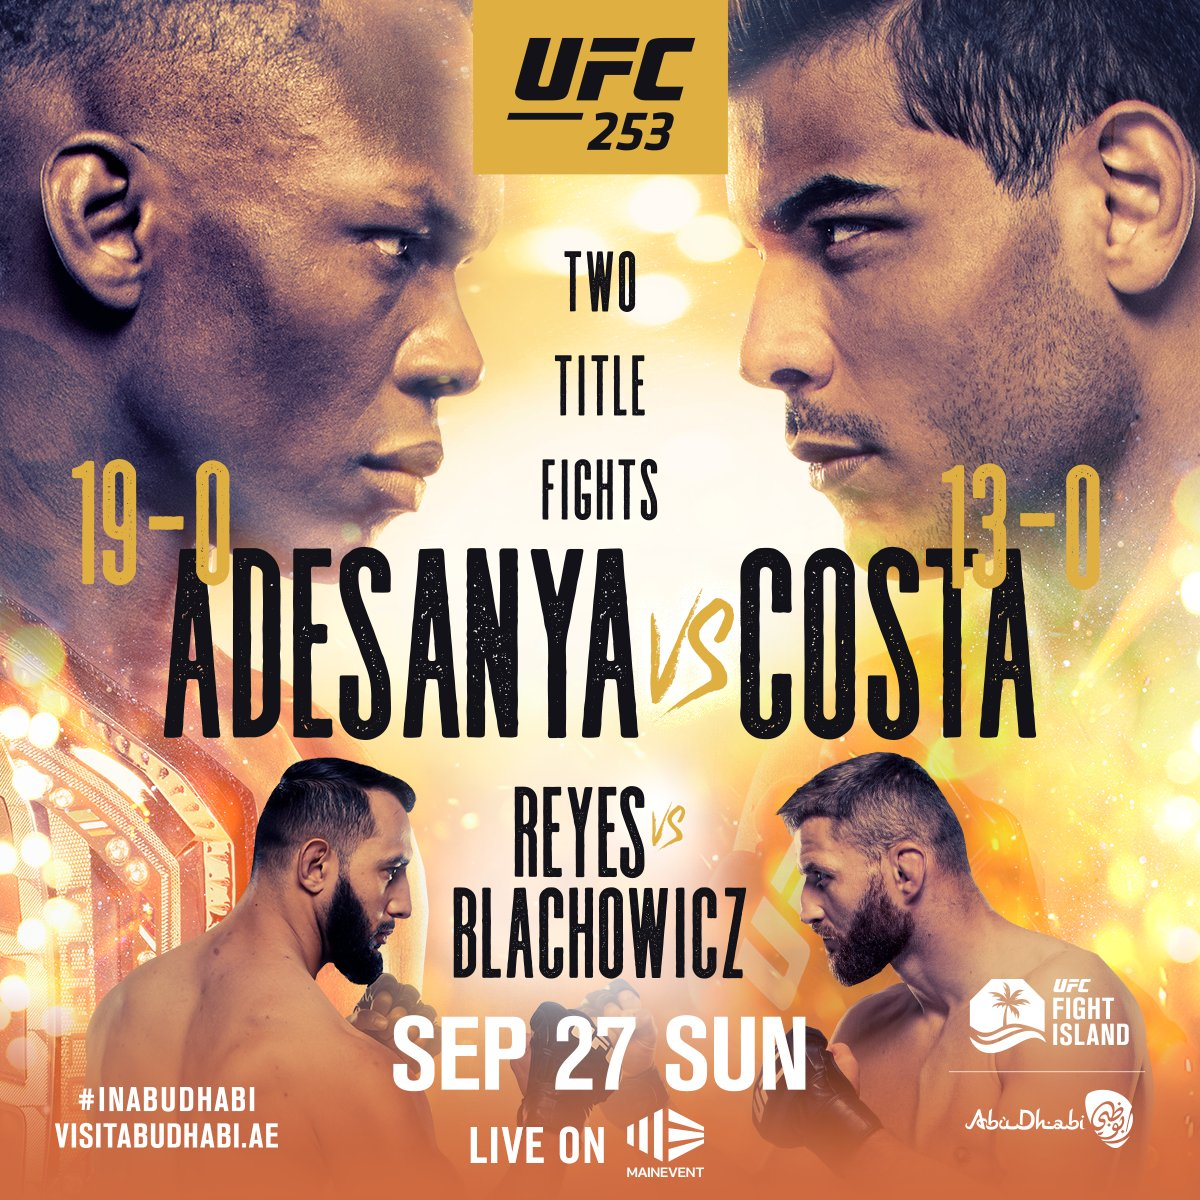 Adesanya  🆚 Costa Reyes  🆚 Blachowicz   Two titles on the line 🏆 Two killer match-ups 👊 ALL ON UFC FIGHT ISLAND 🏝   We cannot wait for #UFC253!    📺 ORDER NOW: https://t.co/pKr9rzk2VY https://t.co/capKm392h5